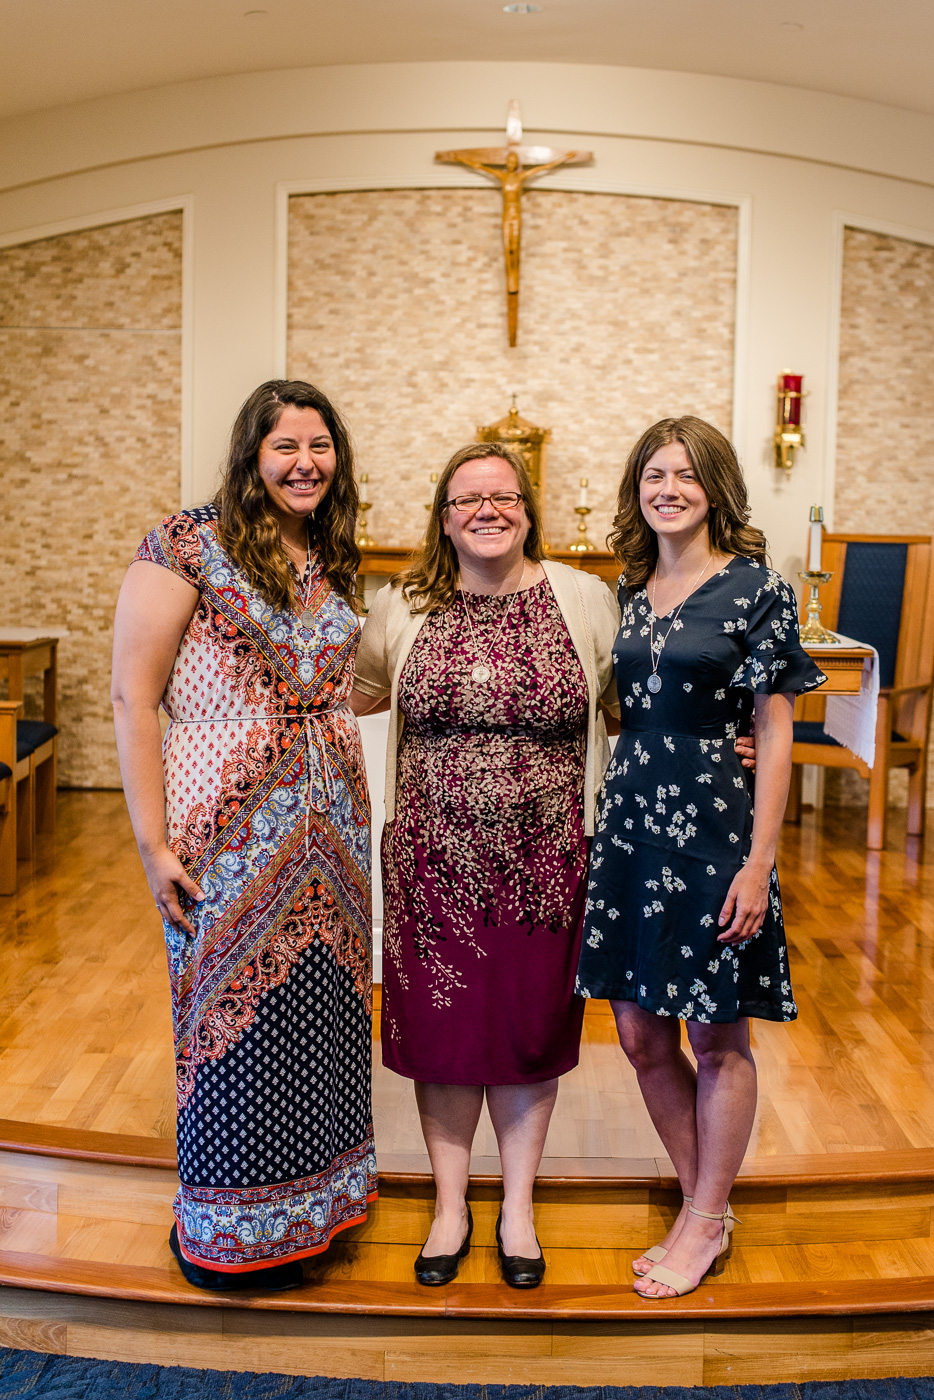 Emily-Annette-Photography-Catholic-Consecrated-Commitment-Mass-Event-Diocese-Arlington-Fairfax-Photographer-Youth-Apostles-August-2018-19.jpg